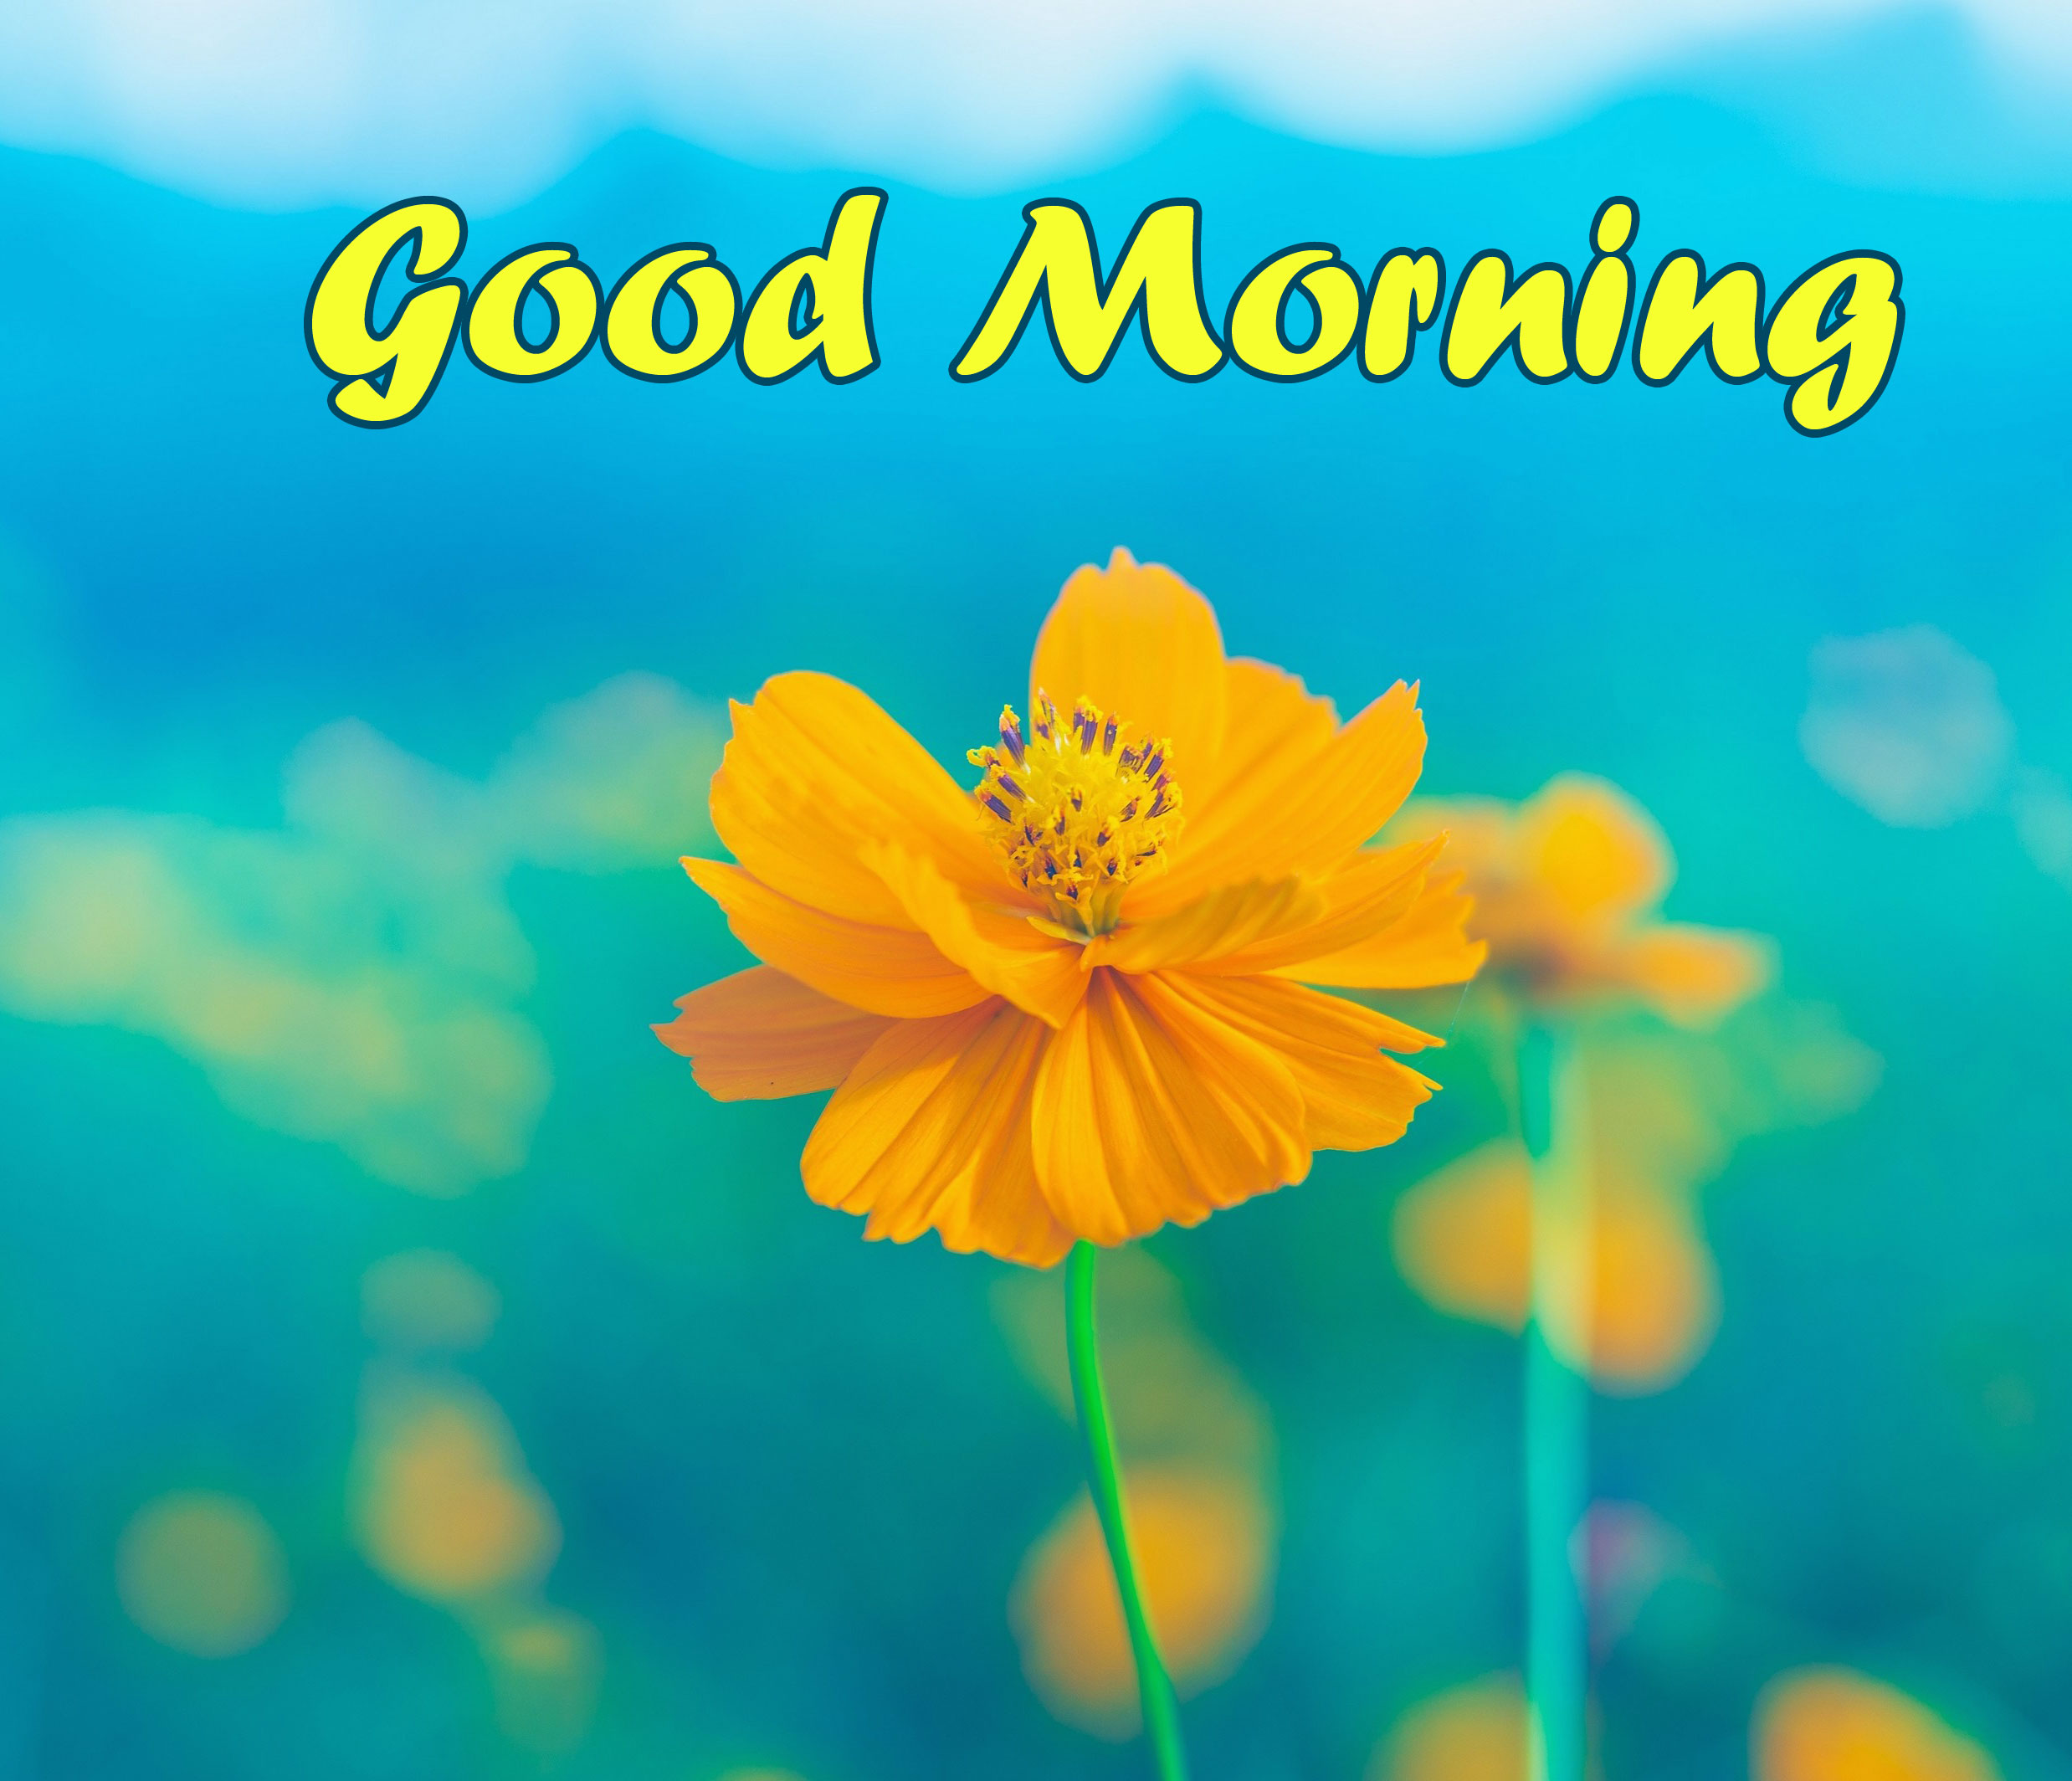 Good Morning with Cute Flower Pic